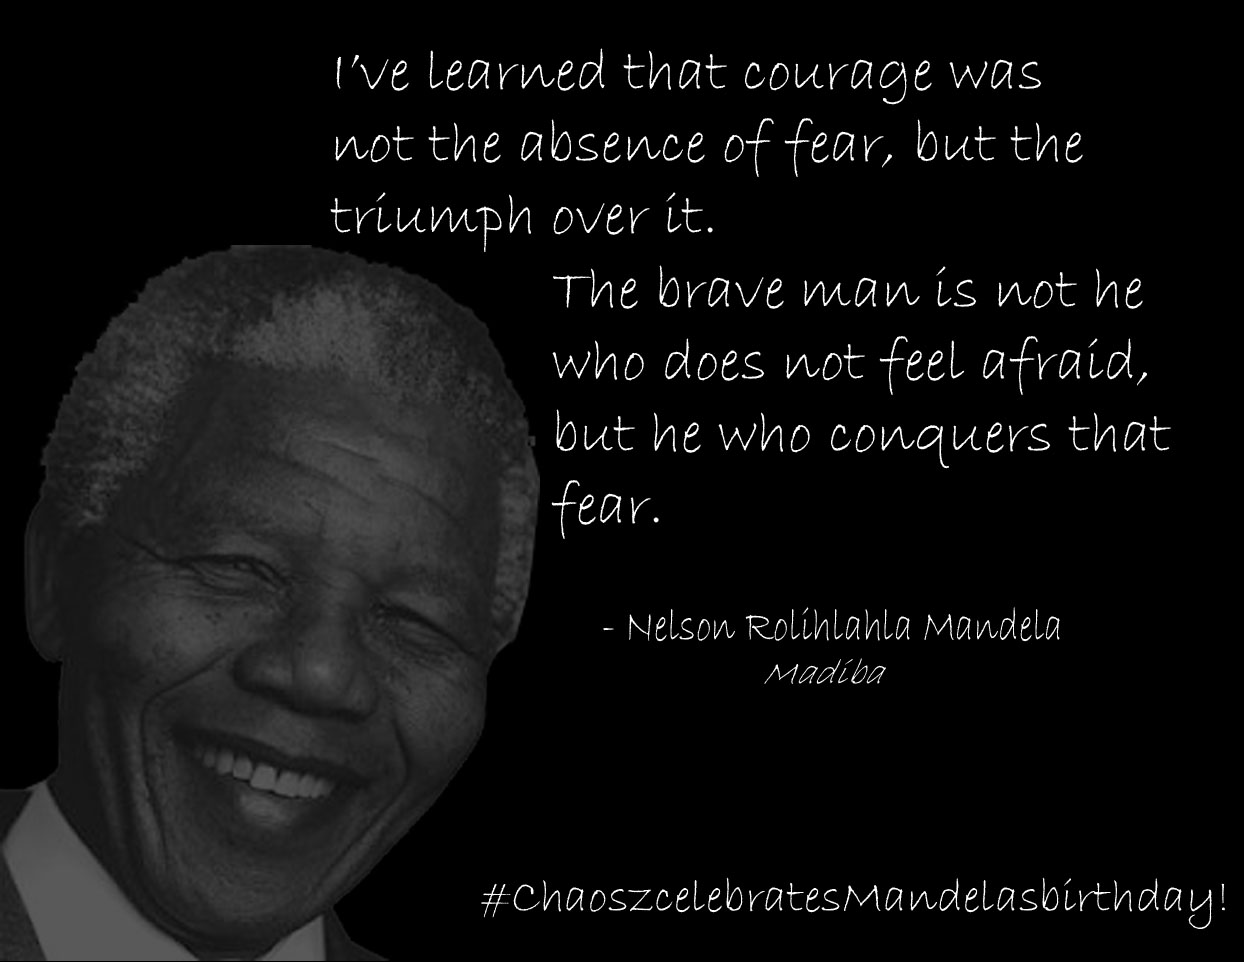 Quotes About Courage Nelson Mandela 22 Quotes